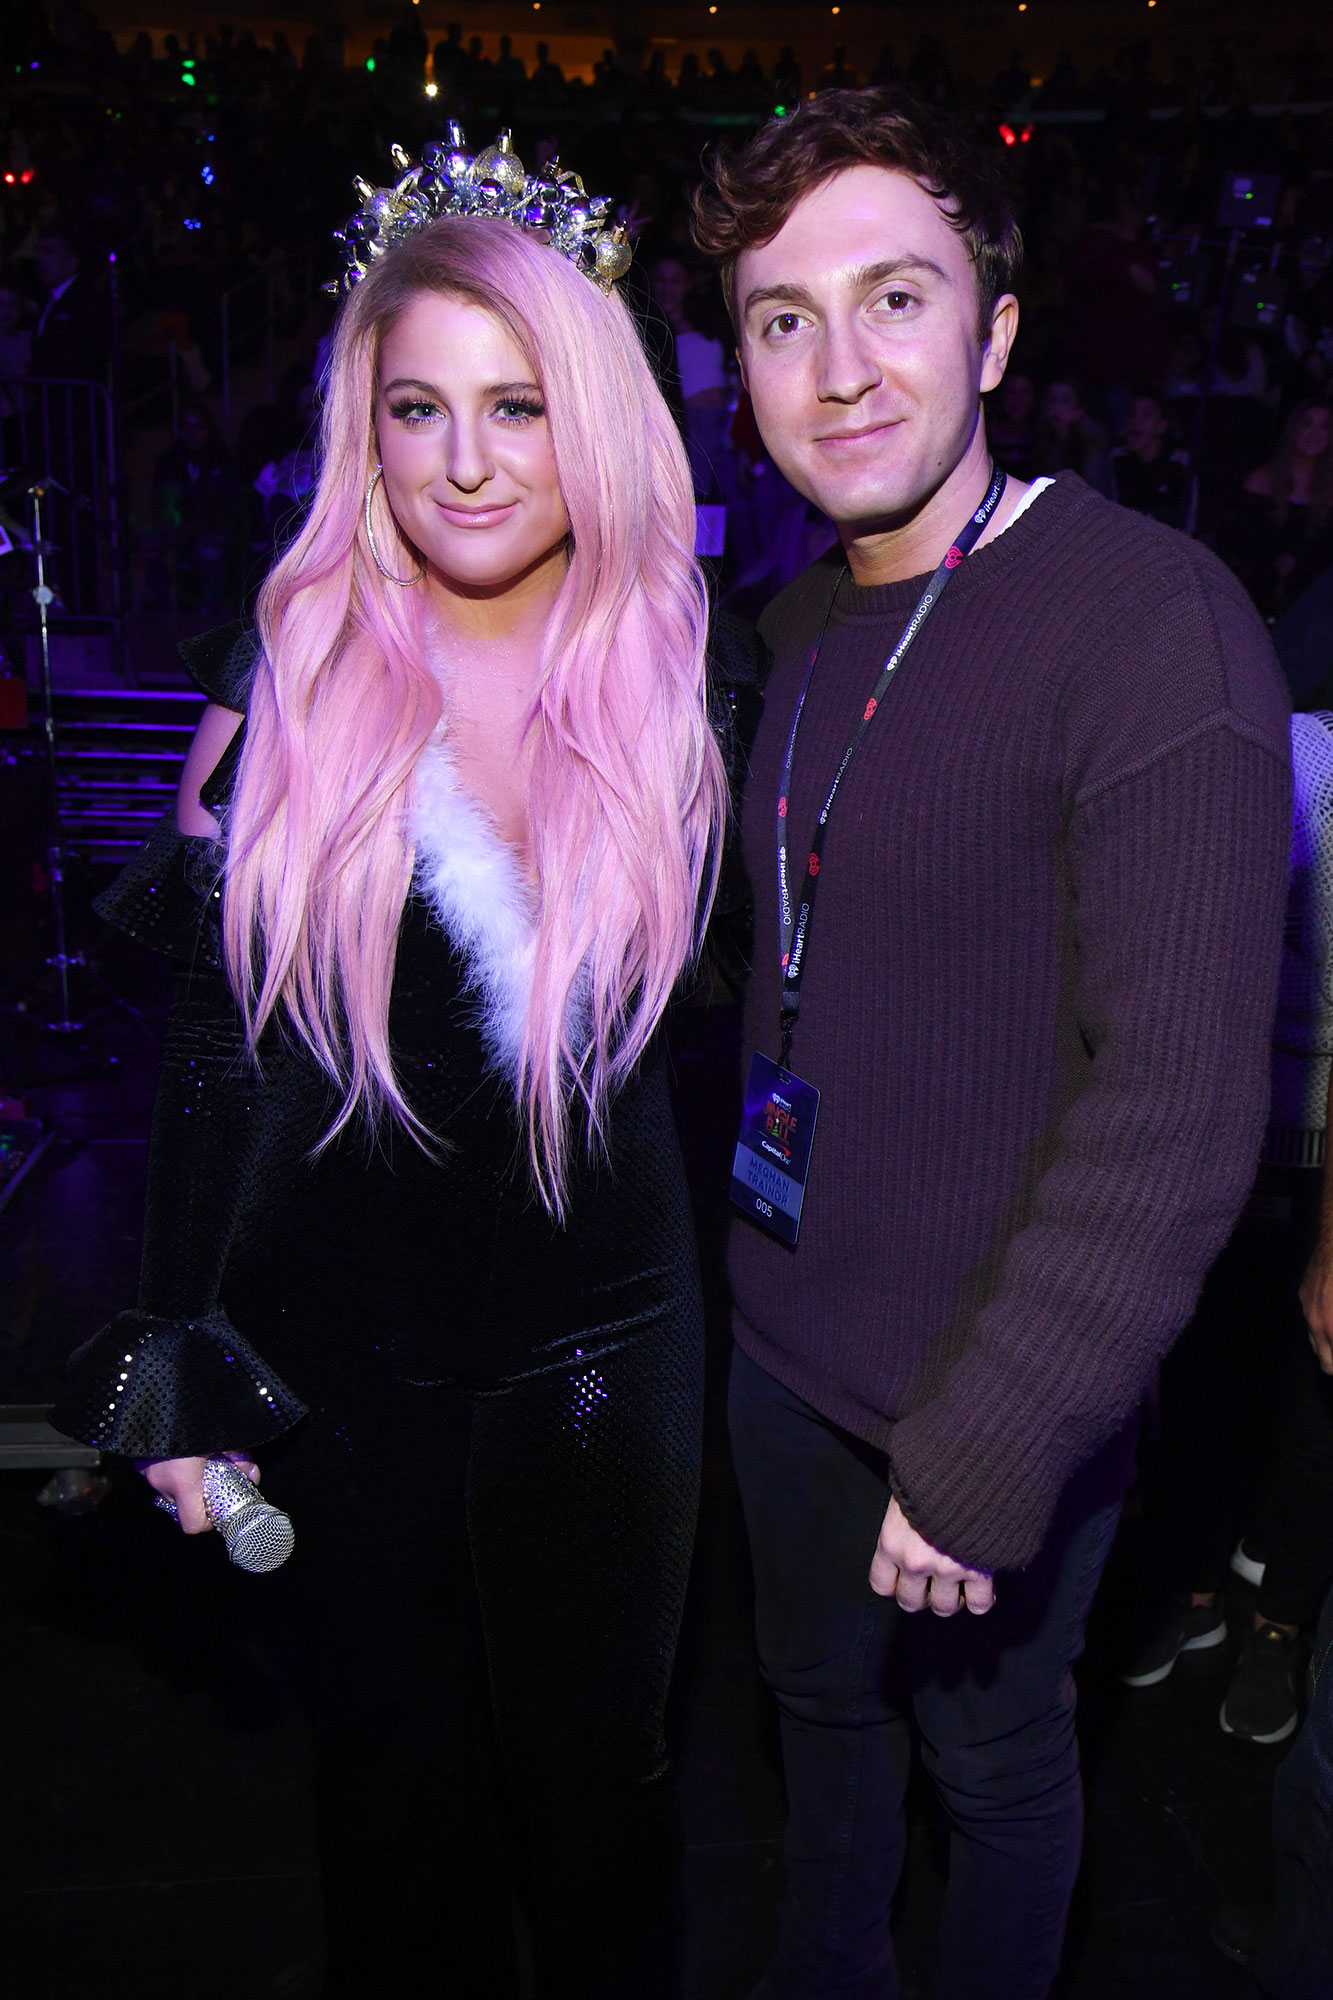 MEGHAN TRAINOR GETS LOVE IN 'ALL THE WAYS' FROM DARYL SABARA